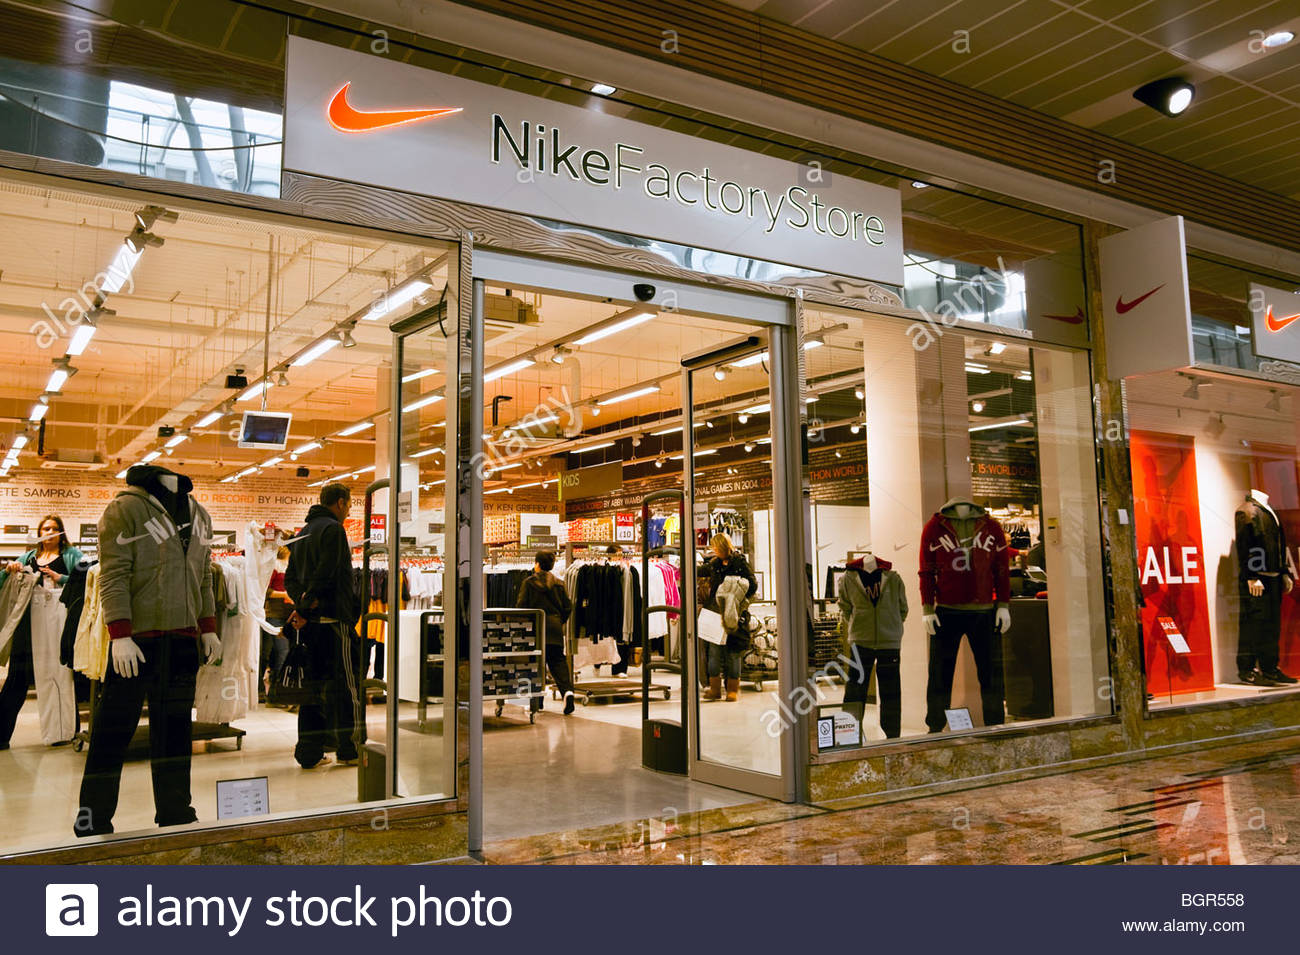 Our sport footwear outlet online store offers Nike Air Jordan shoes, Nike Air Max, Nike Shox, Nike Free Run shoes, Nike Dunks, etc. Buy Nike sneakers from Nike factory outlet, you can get timely excellent customer service, quality warranty and the lower price.